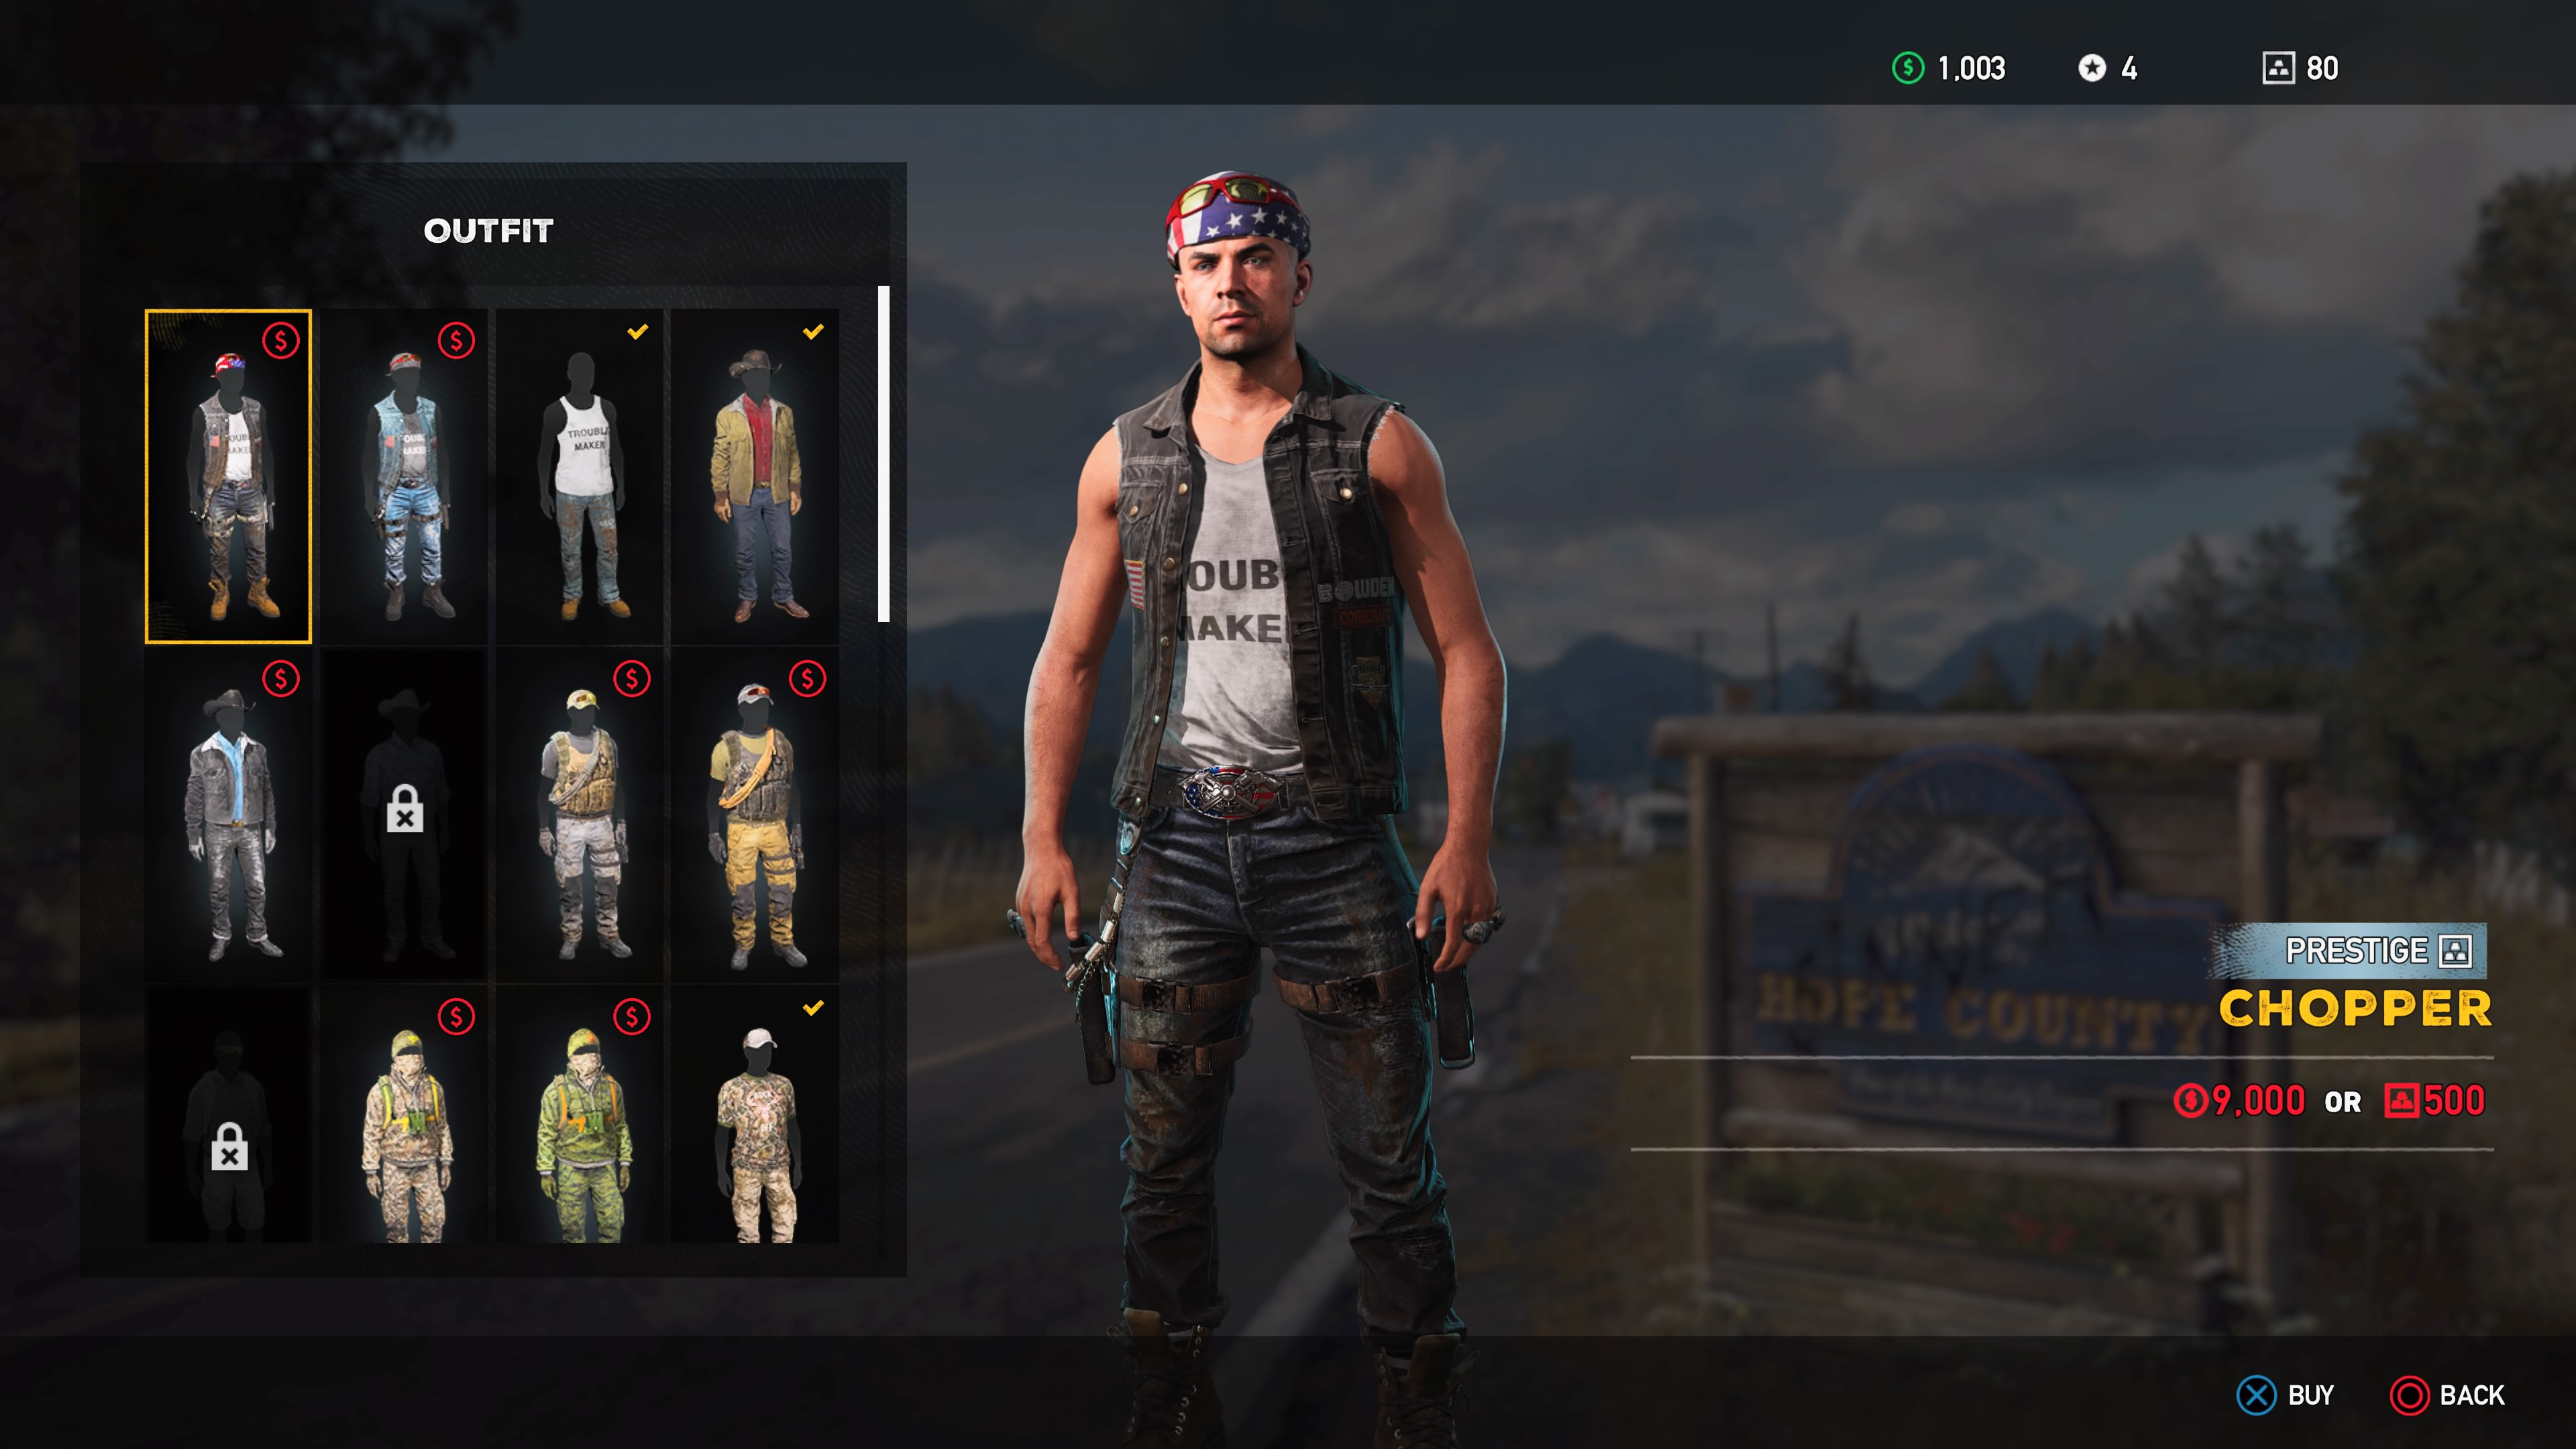 Far Cry 5 Clothes List: All Unlockable Outfits, Upper and